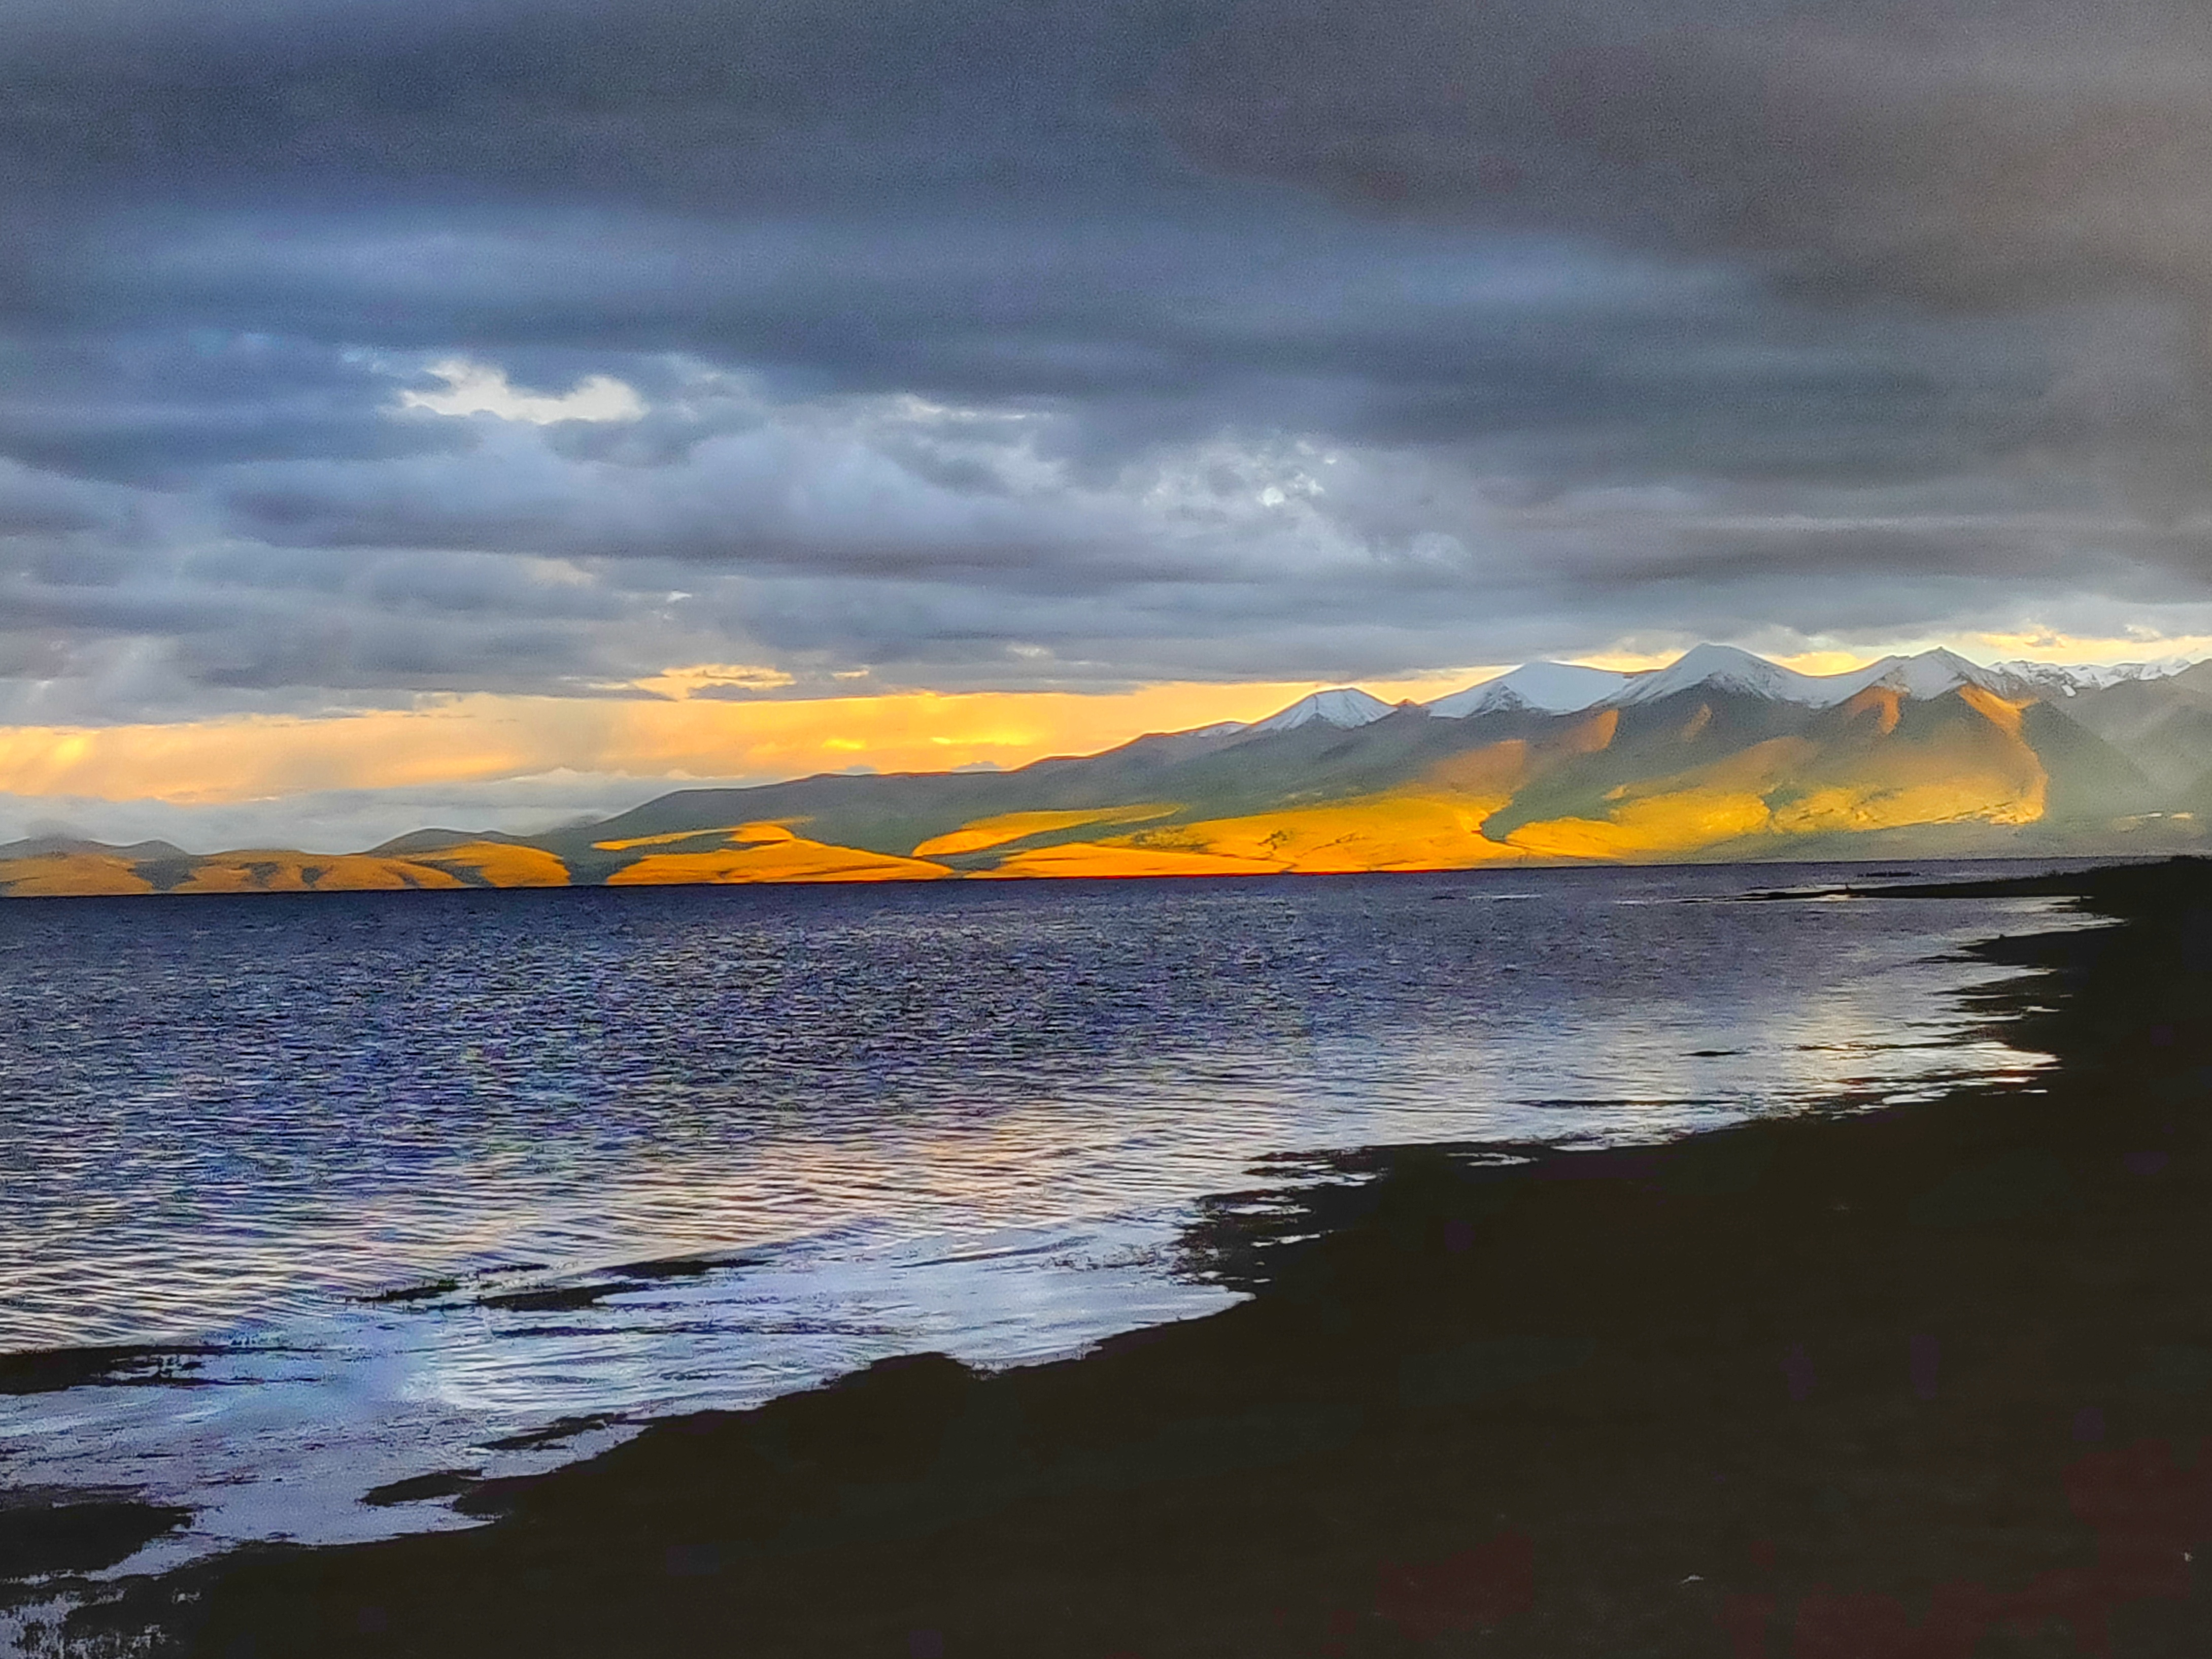 One of the rare evening when Mansarovar Lake got blessed with sunshine. For 5 mins though. It rained throughout my time here